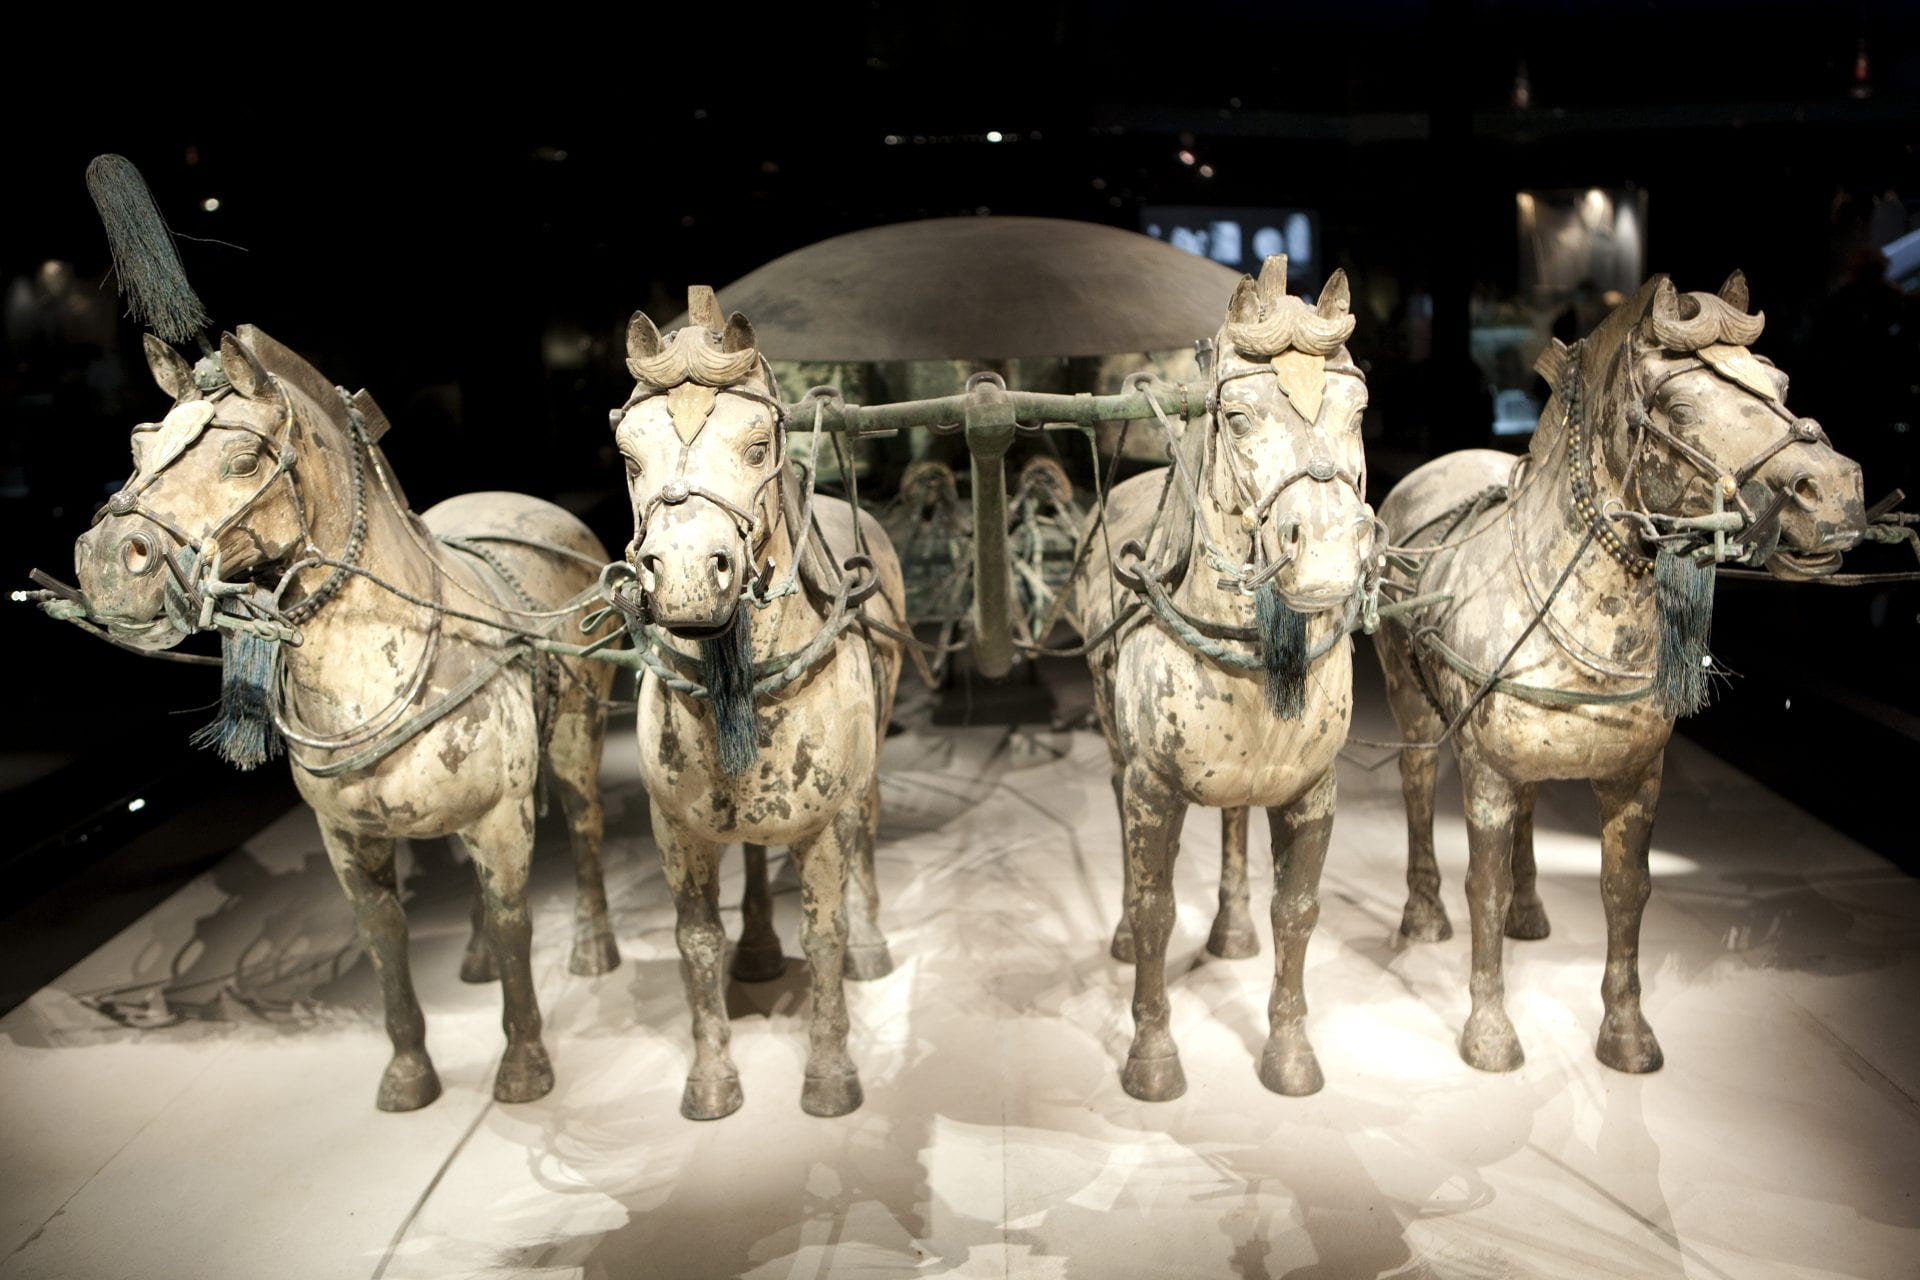 Terracotta-warrior-army-Emperor-Qin-Shi-Huang-first-emperor-of-China-animals-horses-chariots